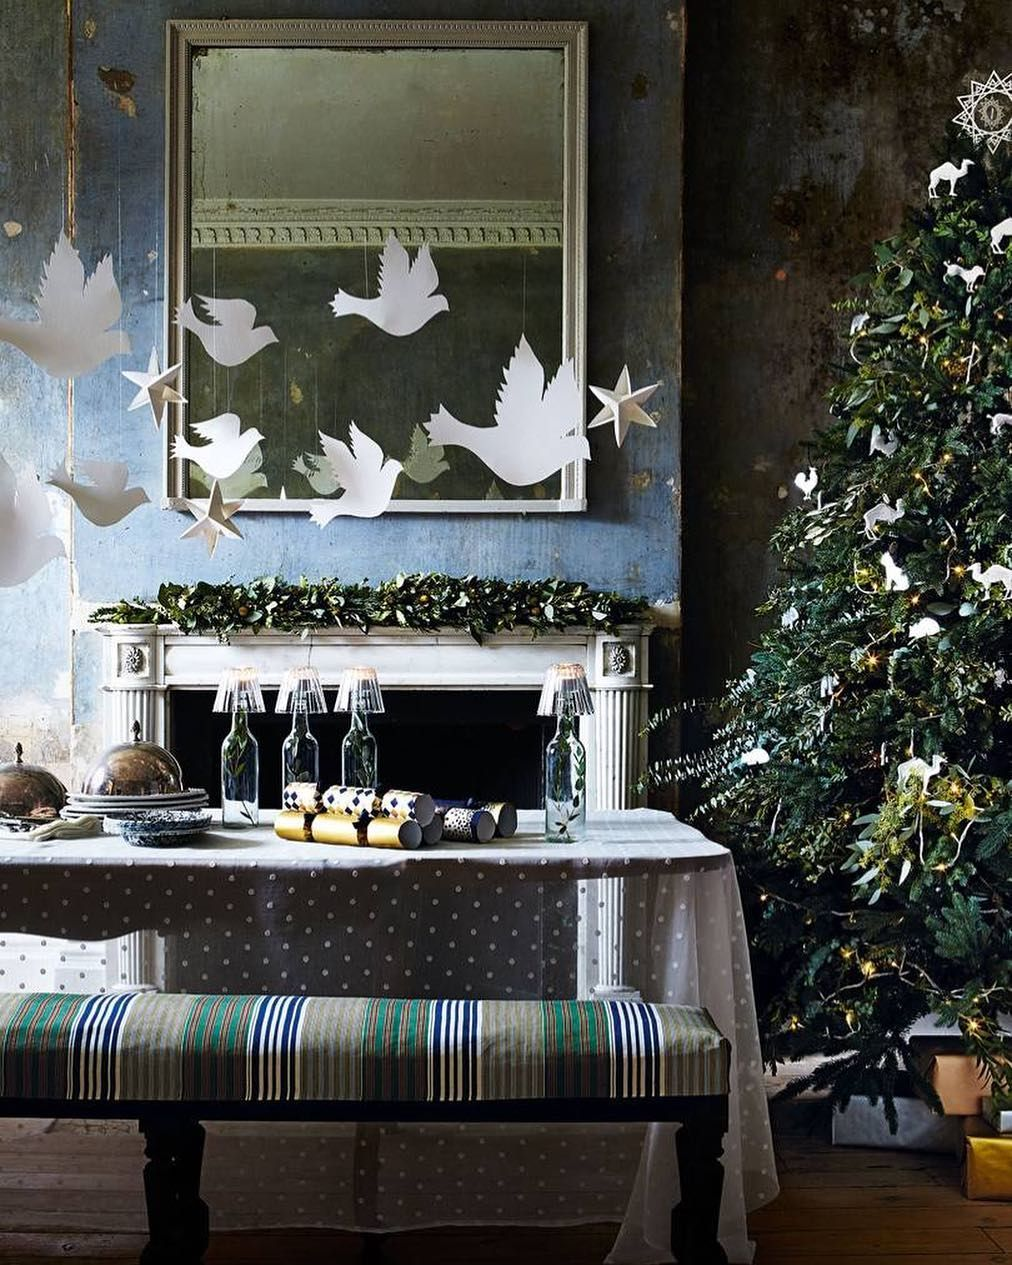 b325f1d8adbd3 The festive season is upon us, and here at @houseandgardenuk our thoughts  naturally turn